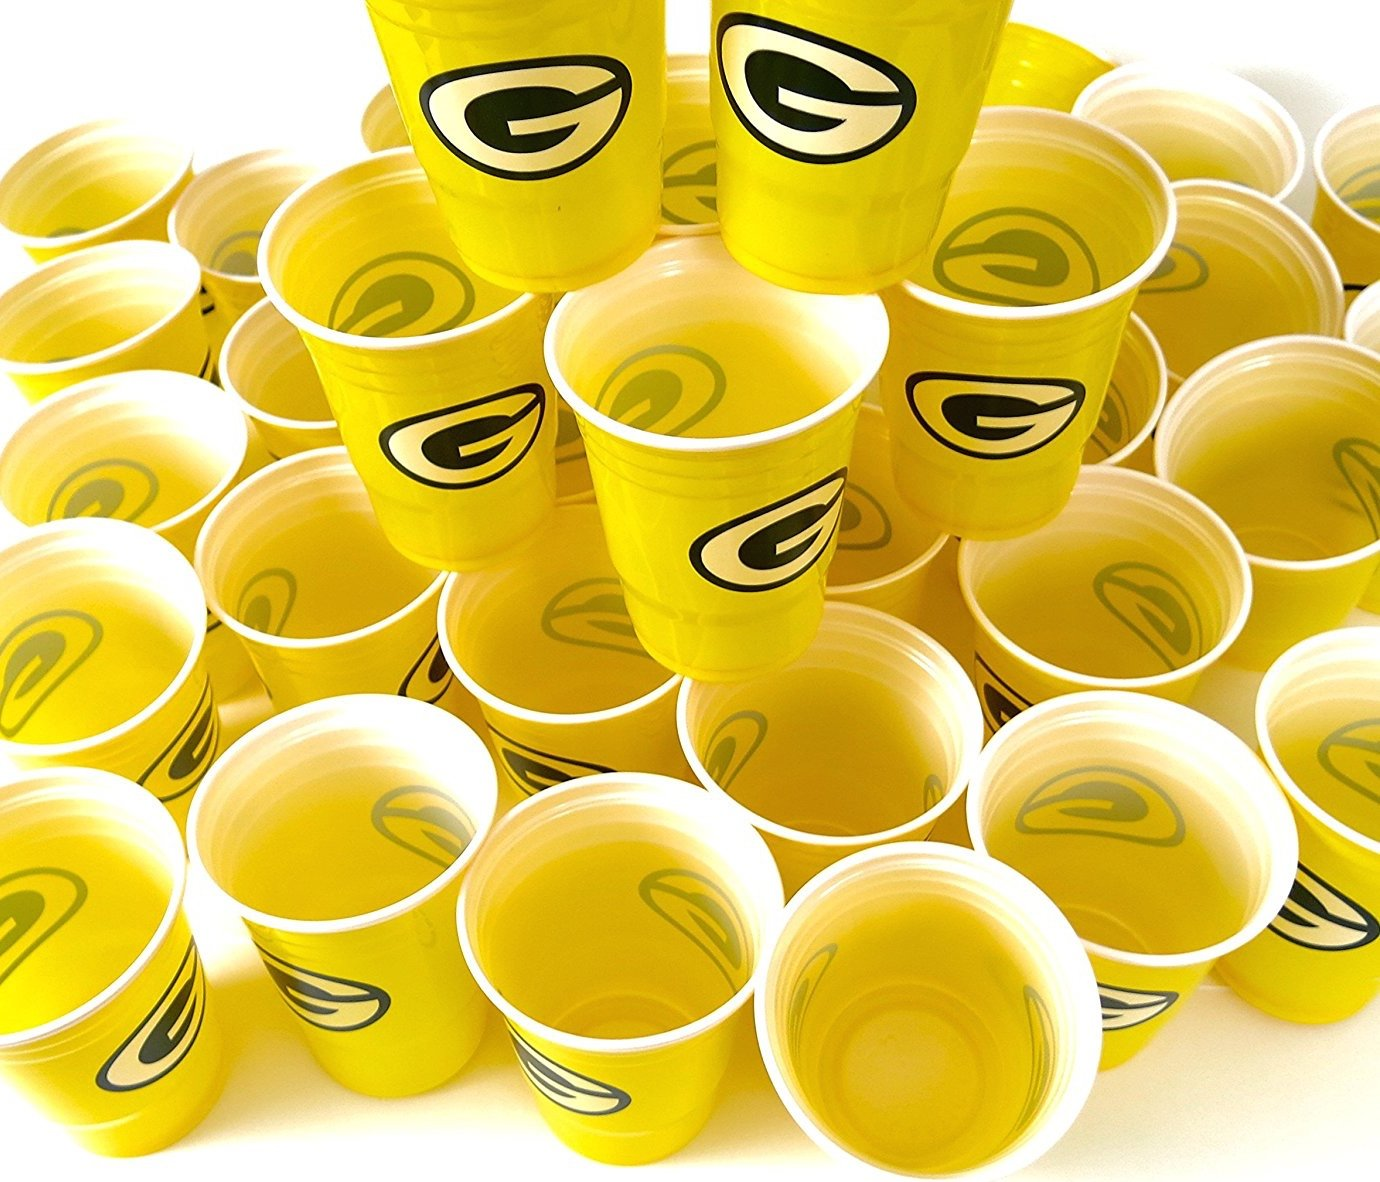 Green Bay Packers 54 party cups barbecue cookout 4th of July Large plastic colorful 18 oz, game day plastic jumbo cups.